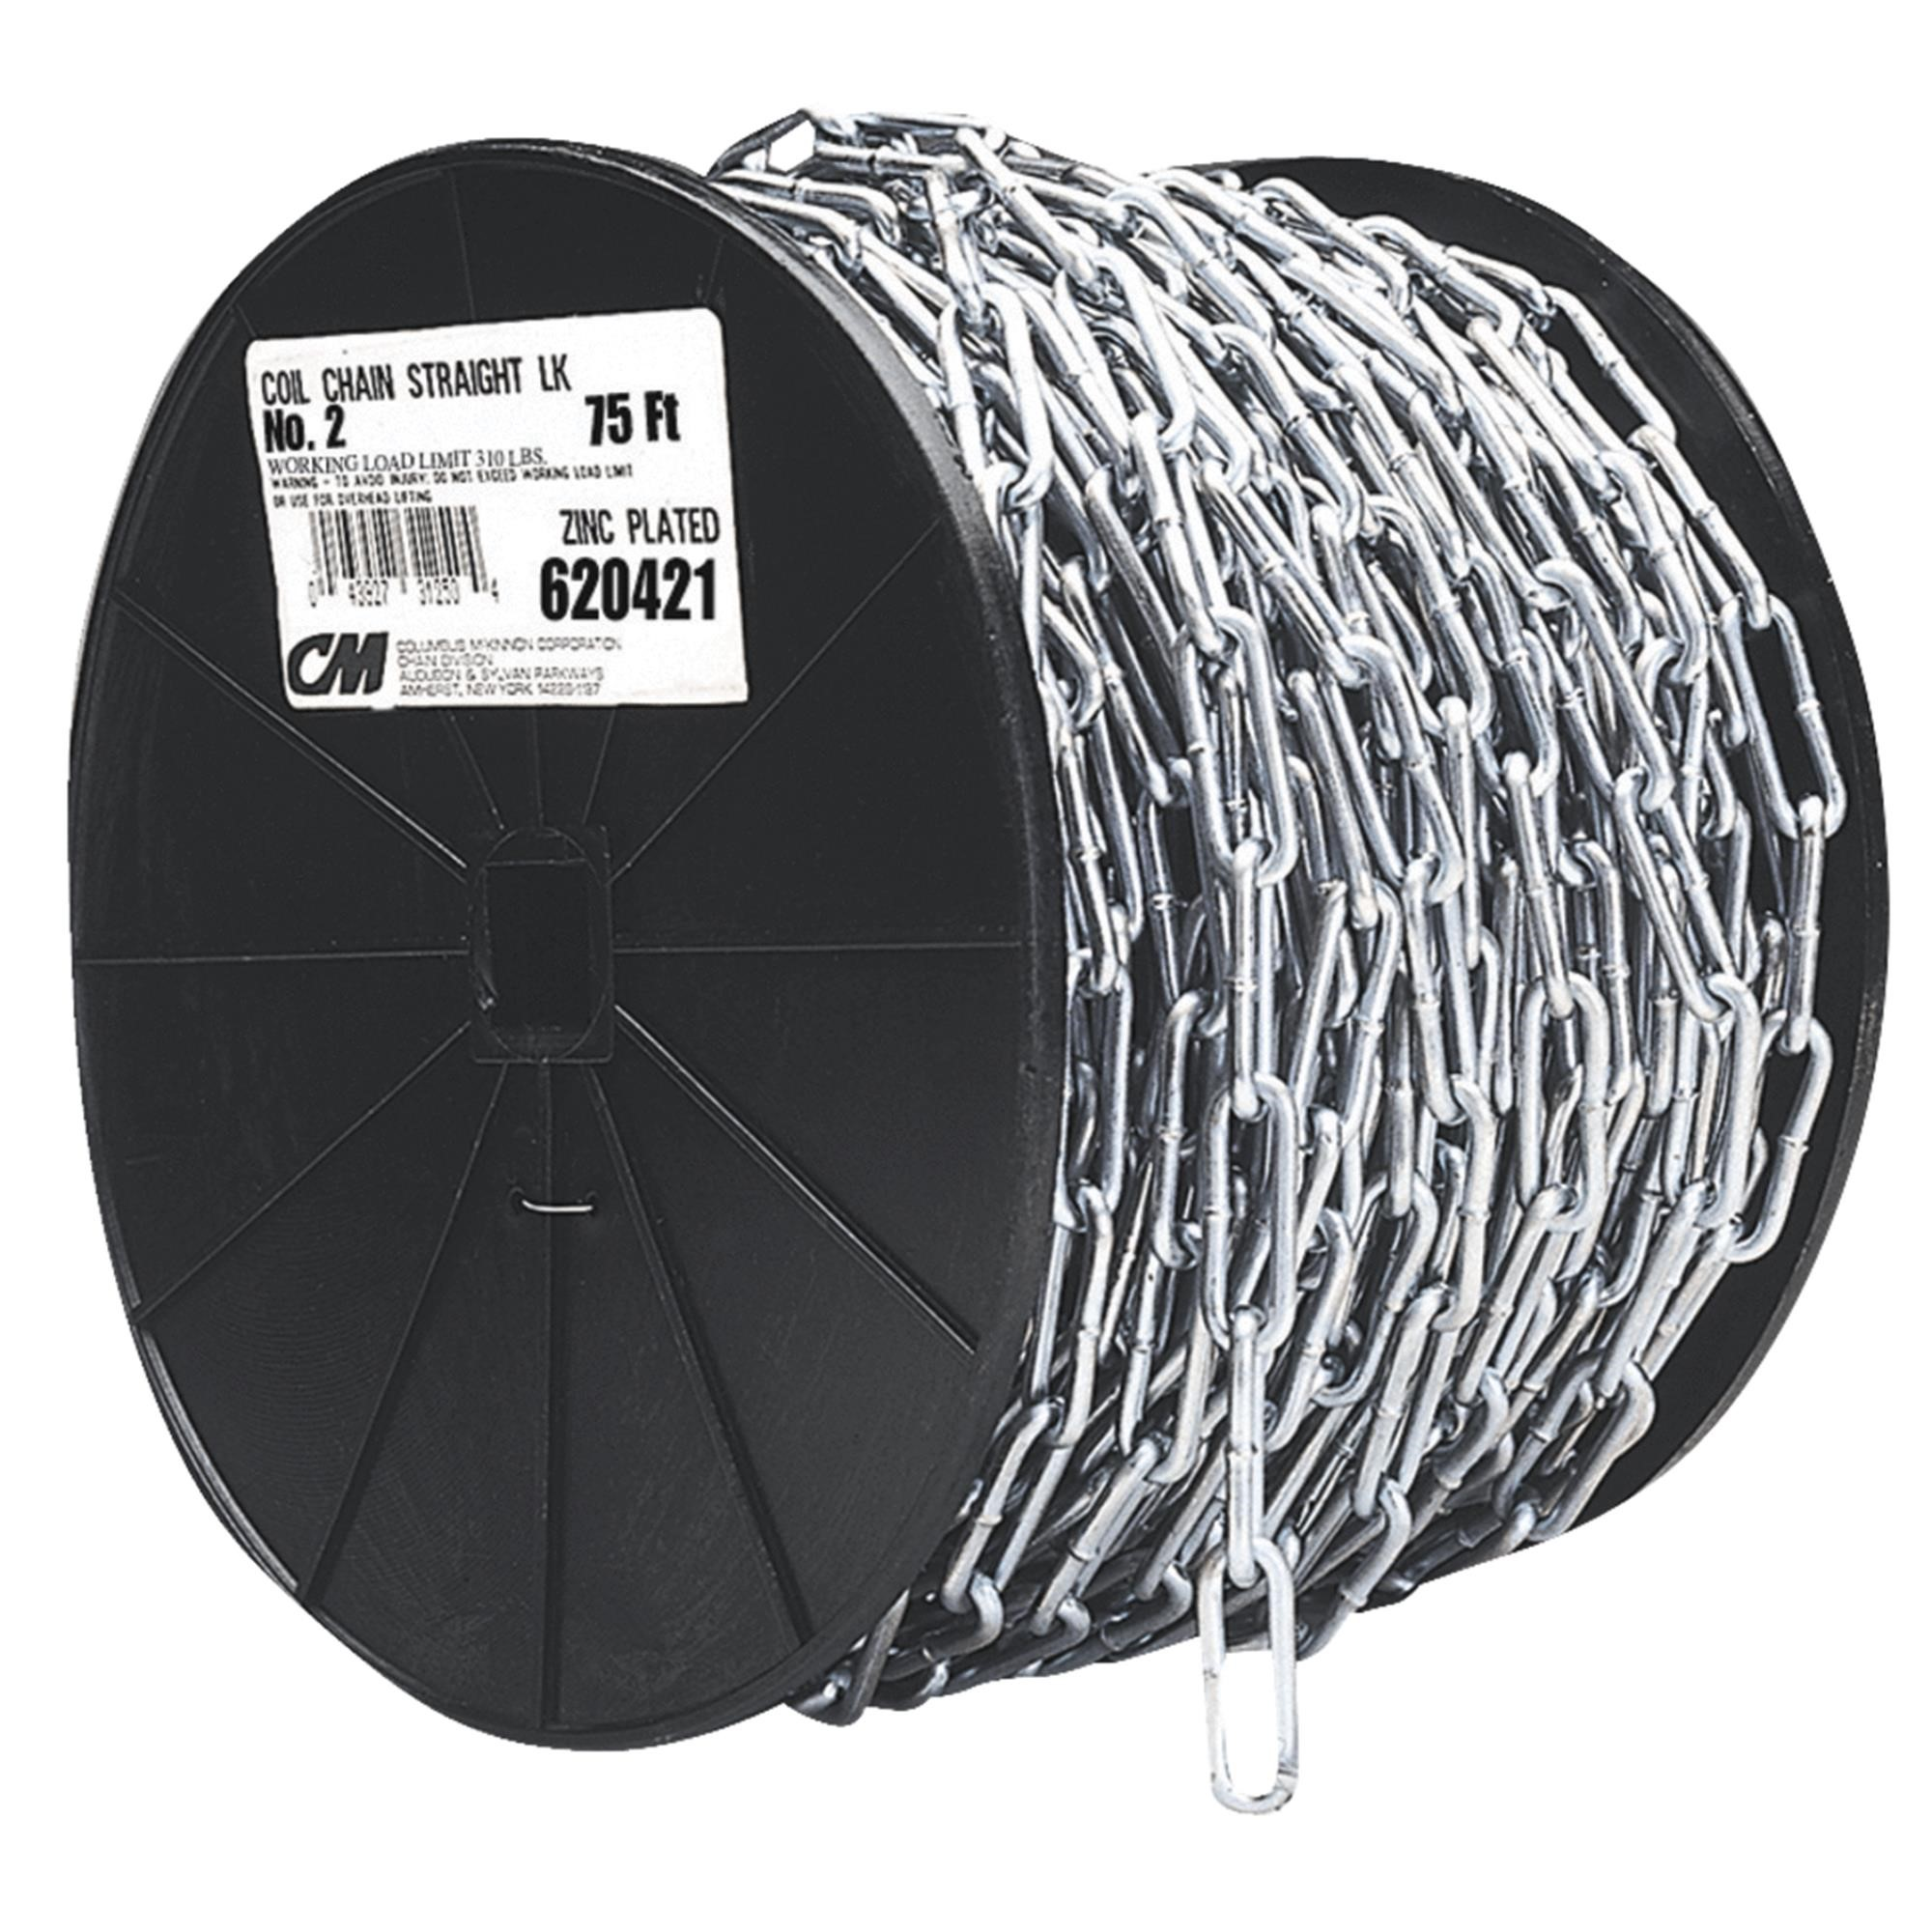 Campbell Chain 072-2827 2/0 40-Foot Straight Link Chain Reel